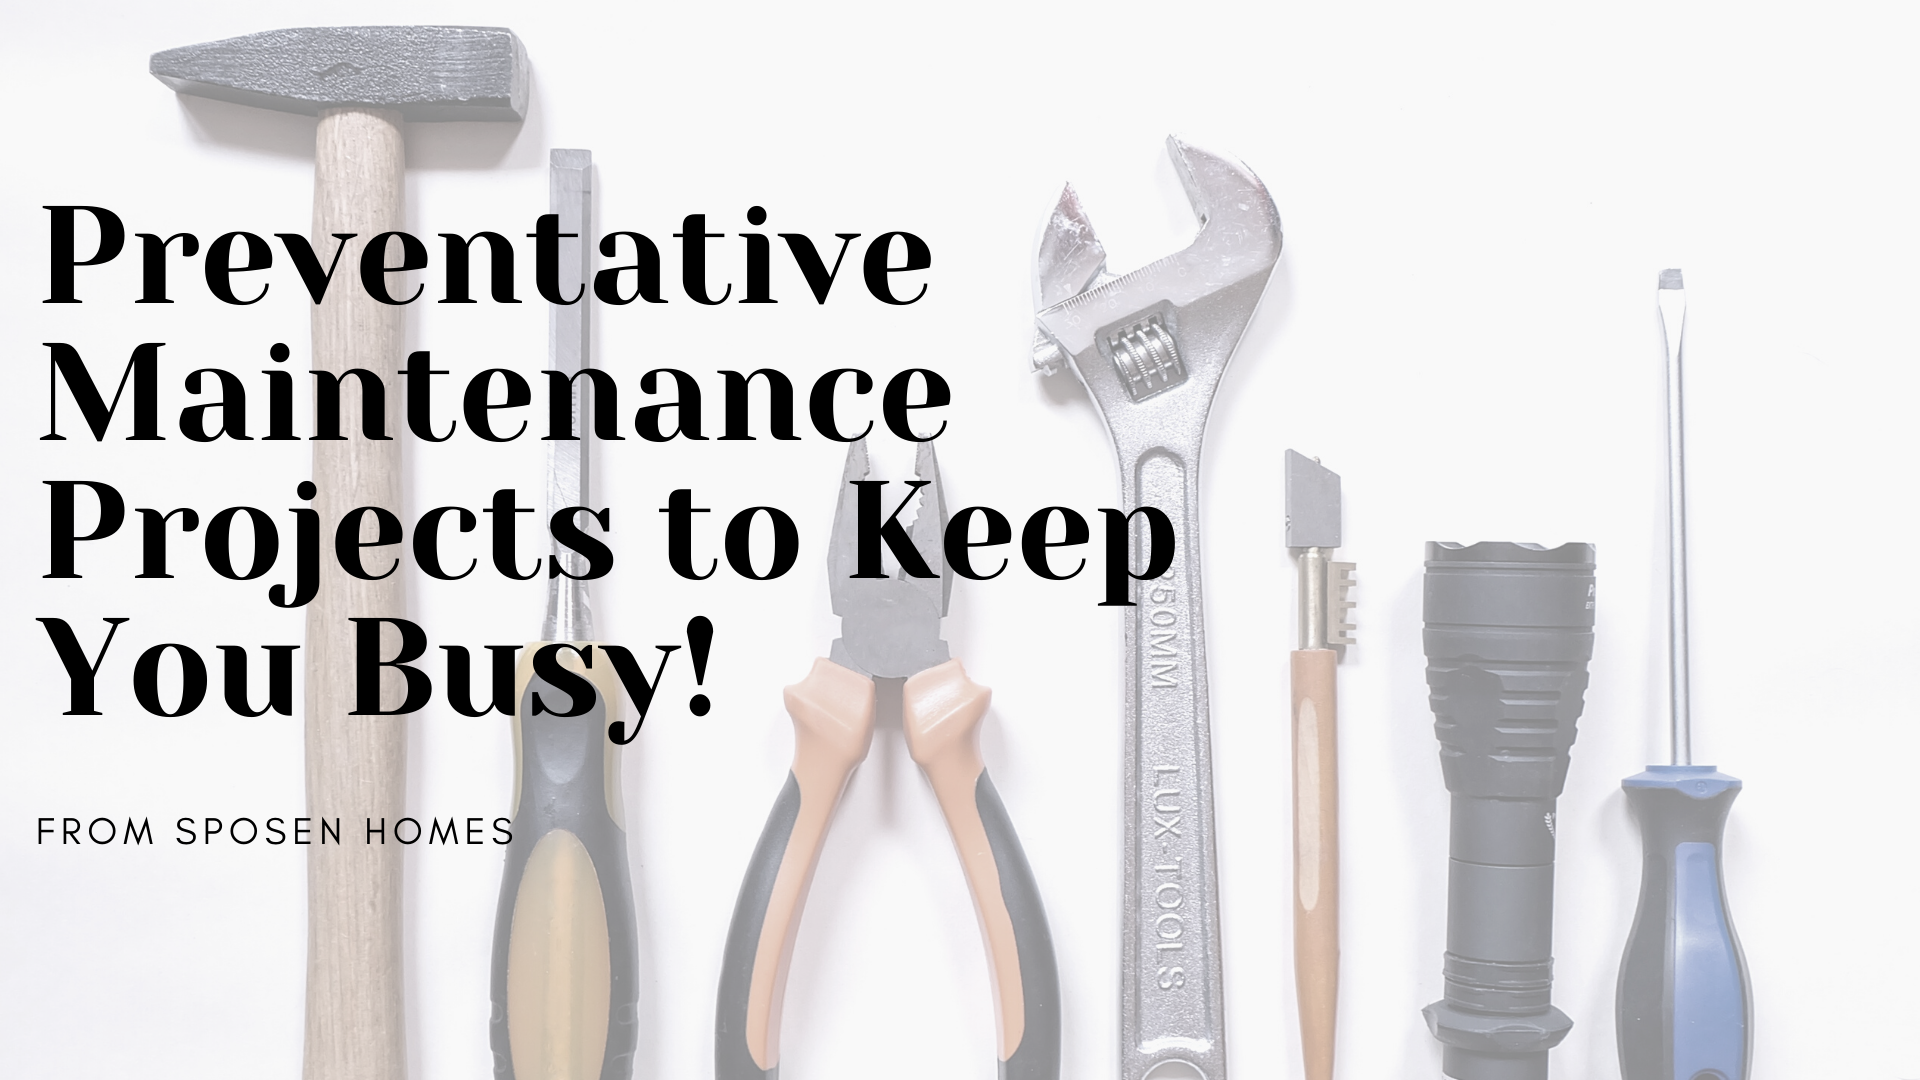 maintenance tools on a white background